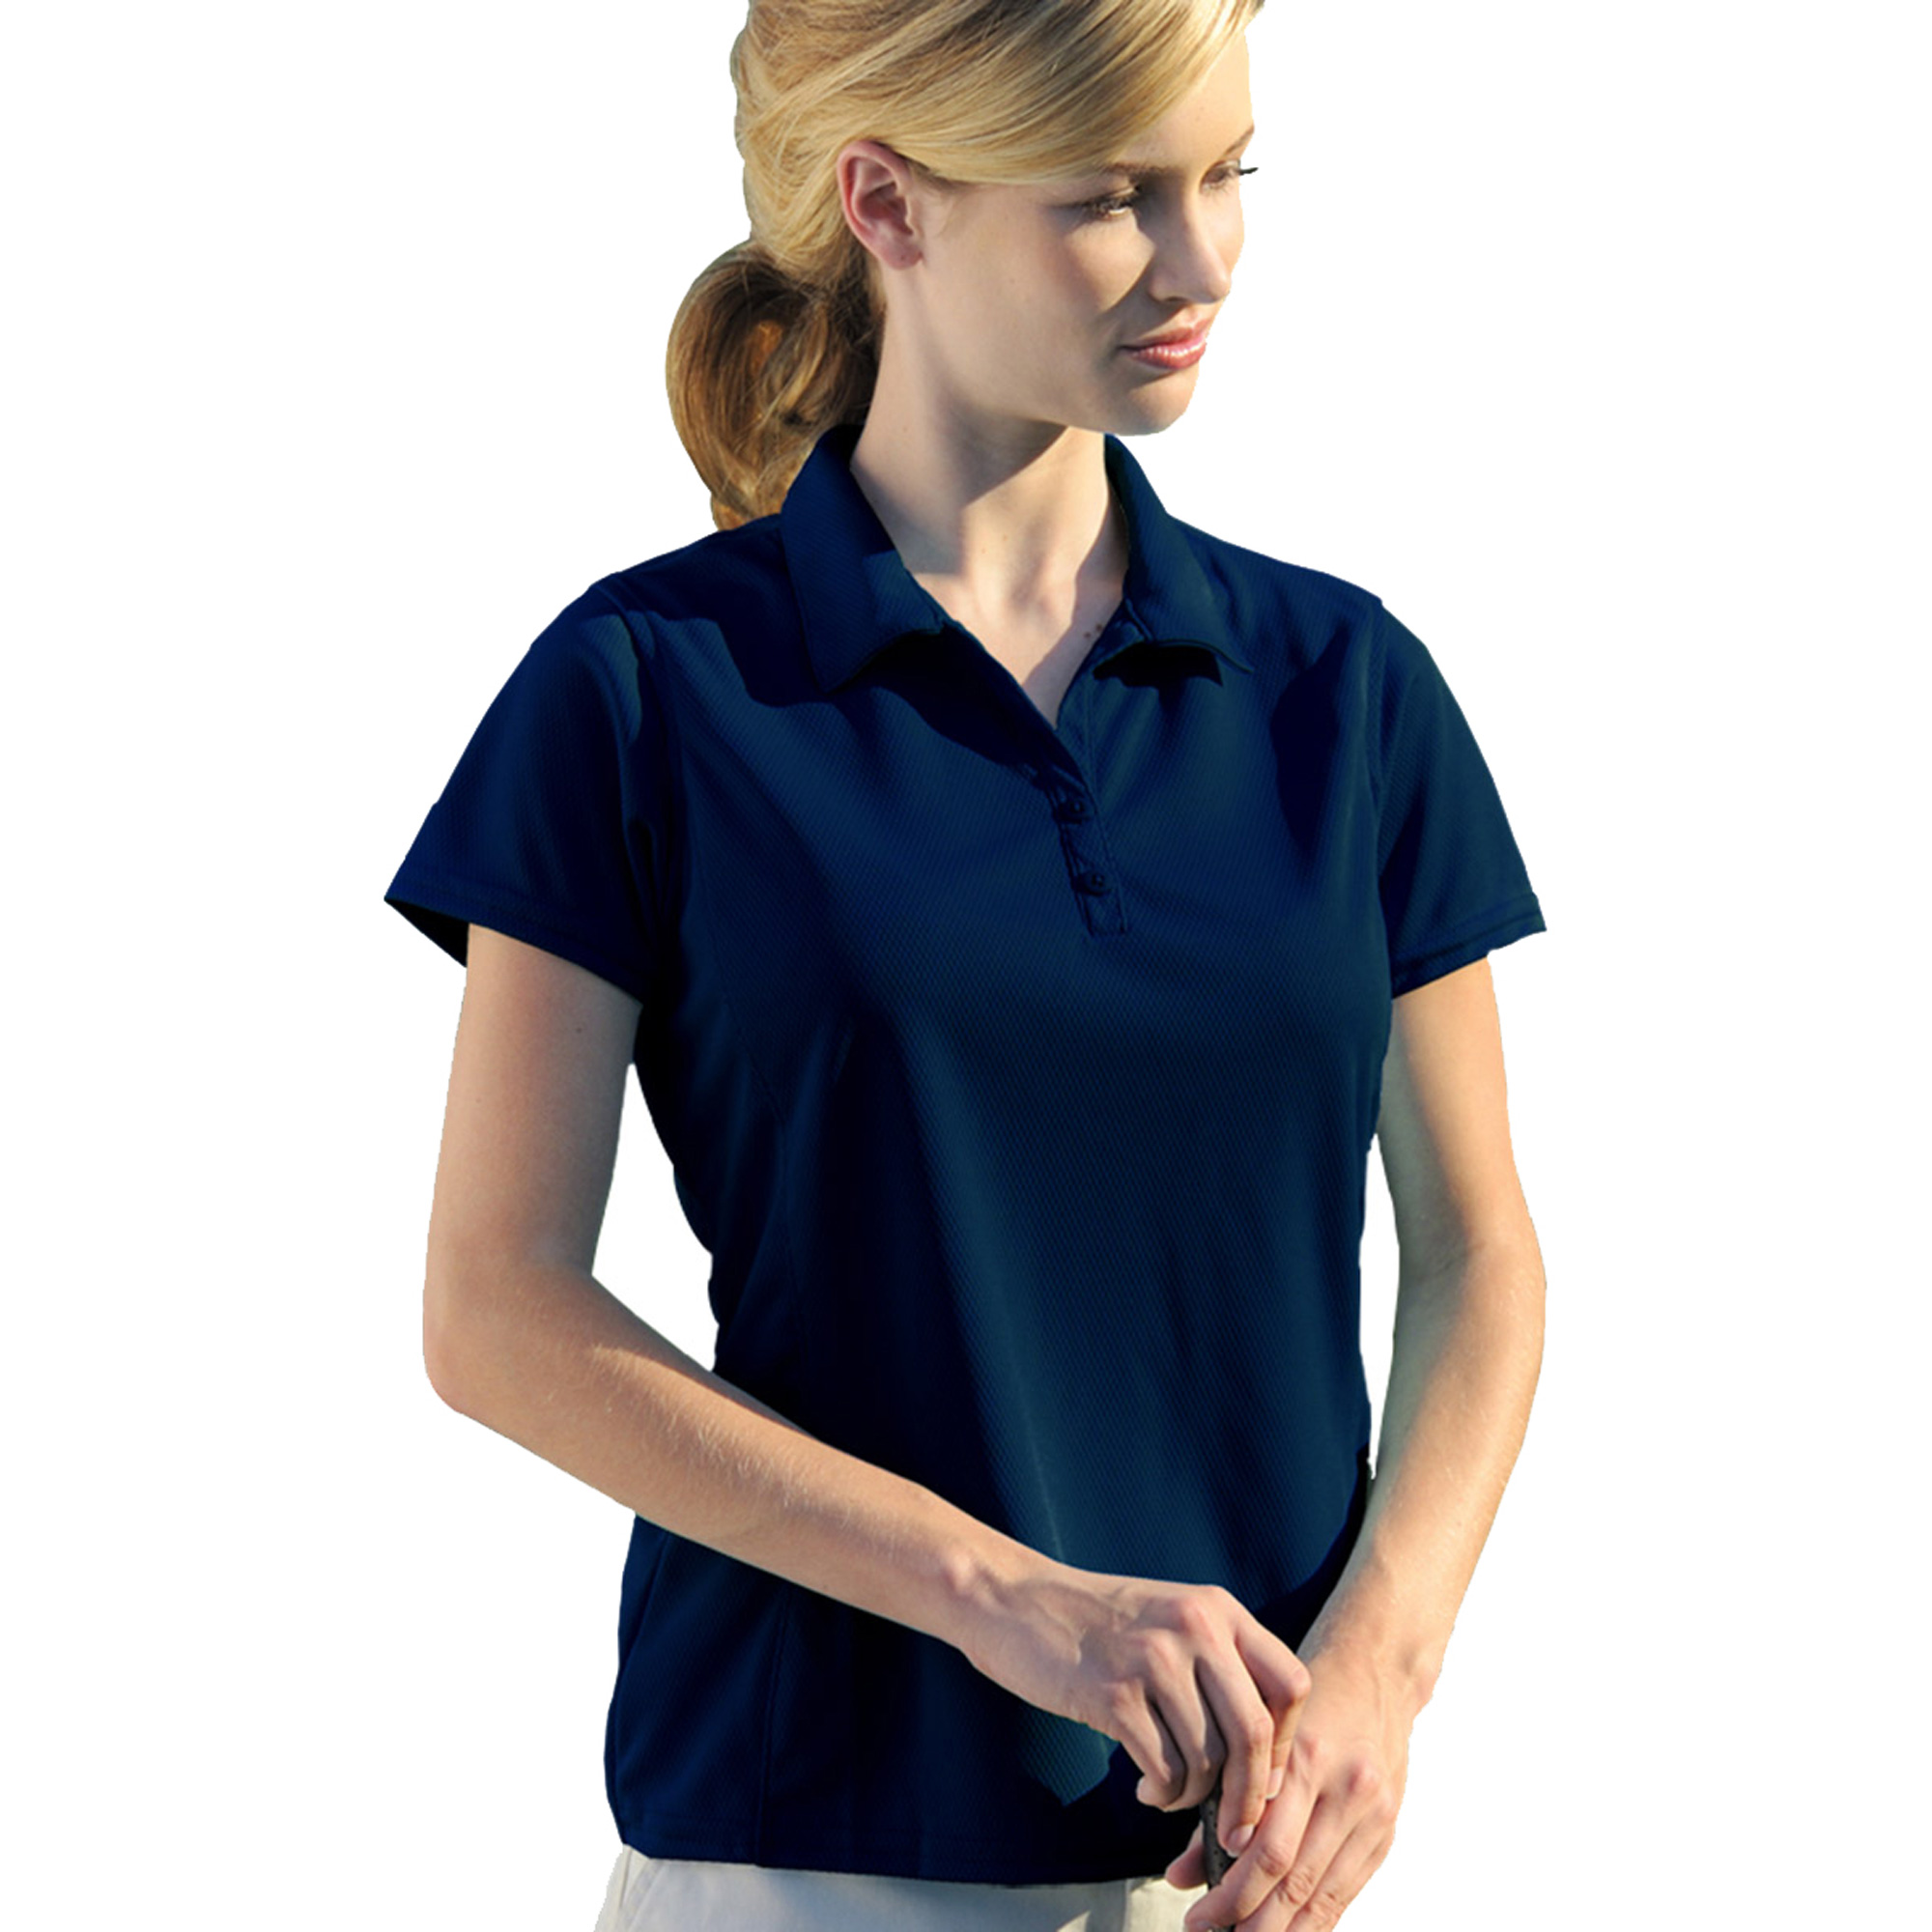 00820599181450 LADIES PERFORMANCE GOLF SHIRT 2801 NAVY L